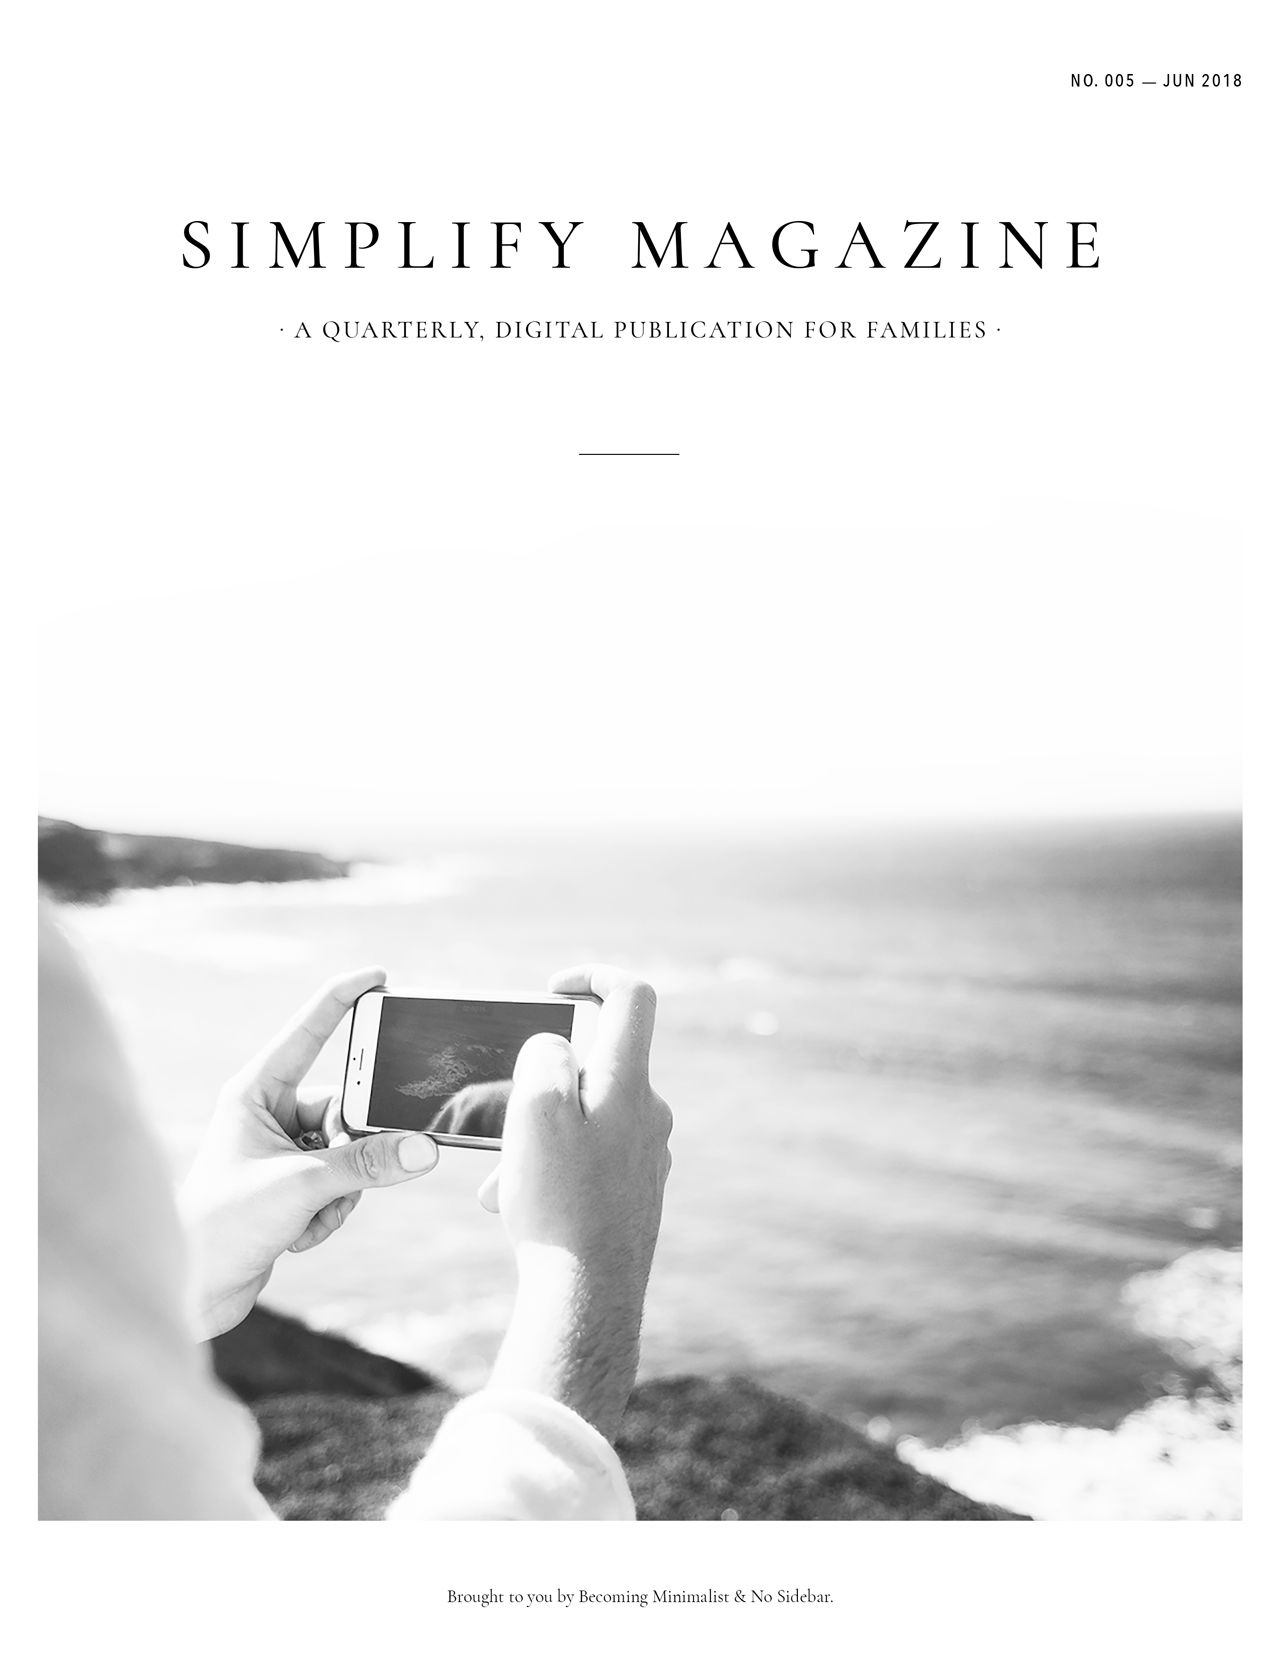 Simplify Magazine Issue #005